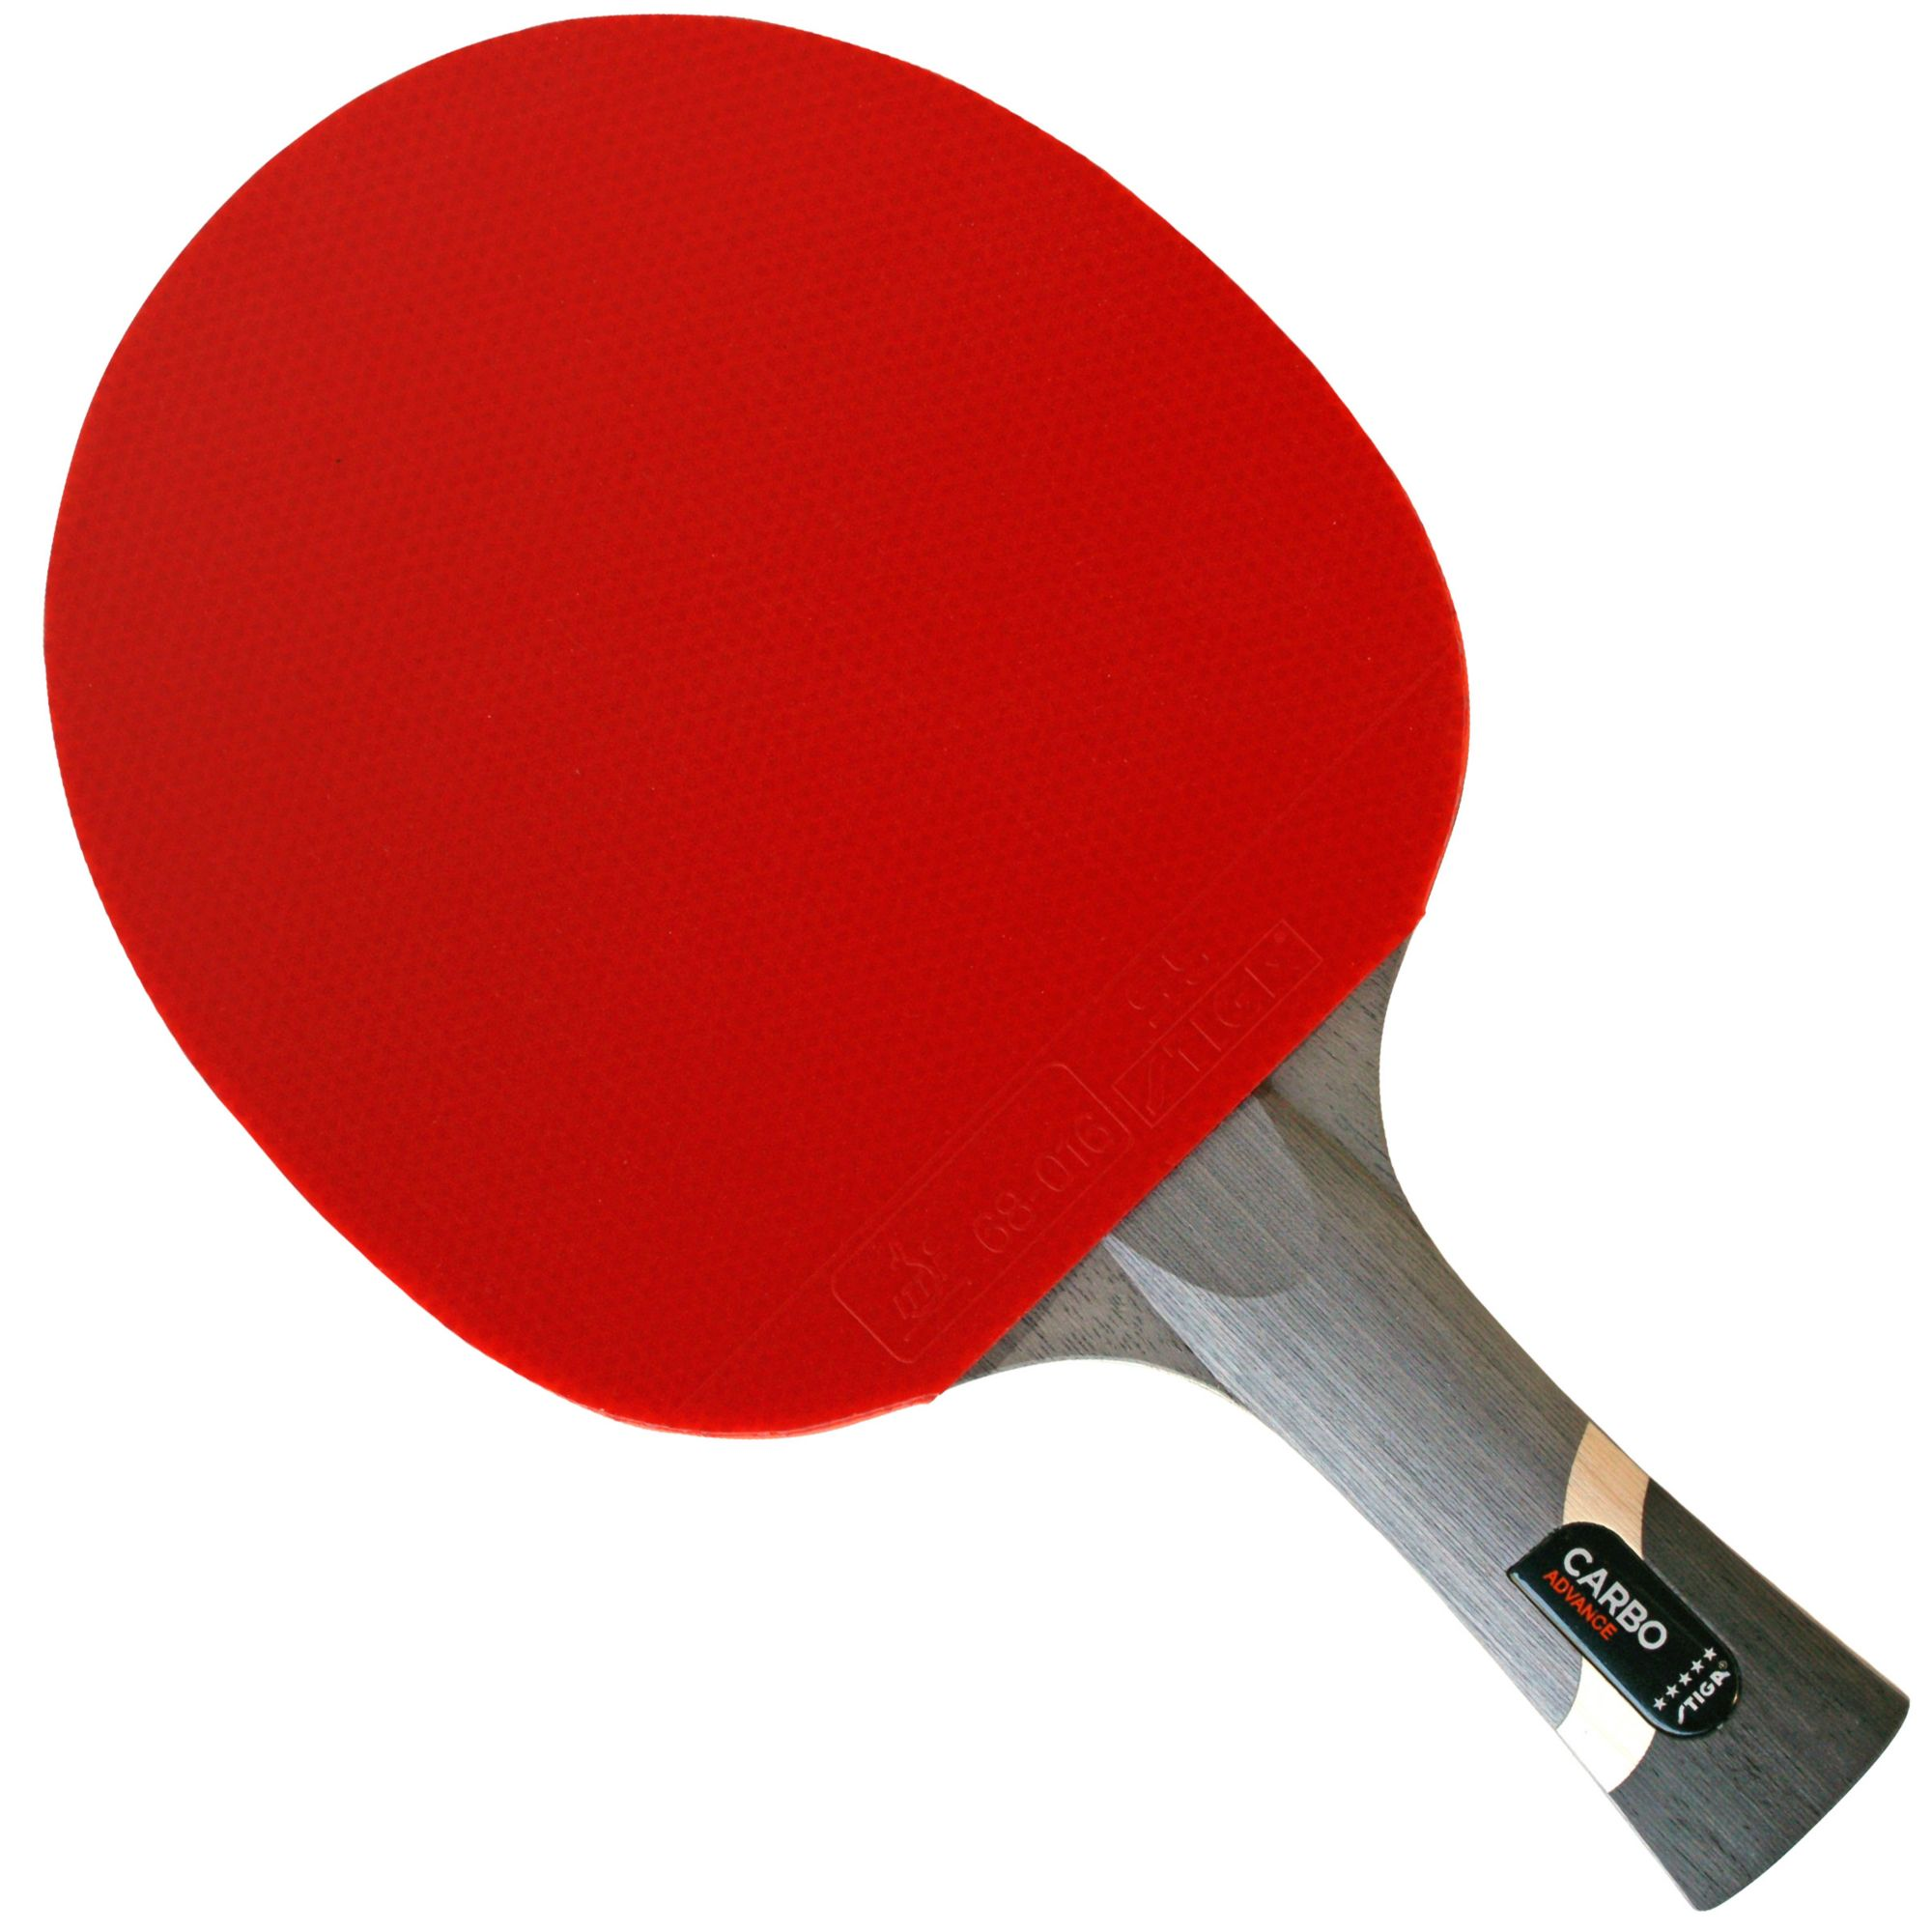 Table tennis racket png - Product Image Stiga Carbo7 Indoor Table Tennis Racket